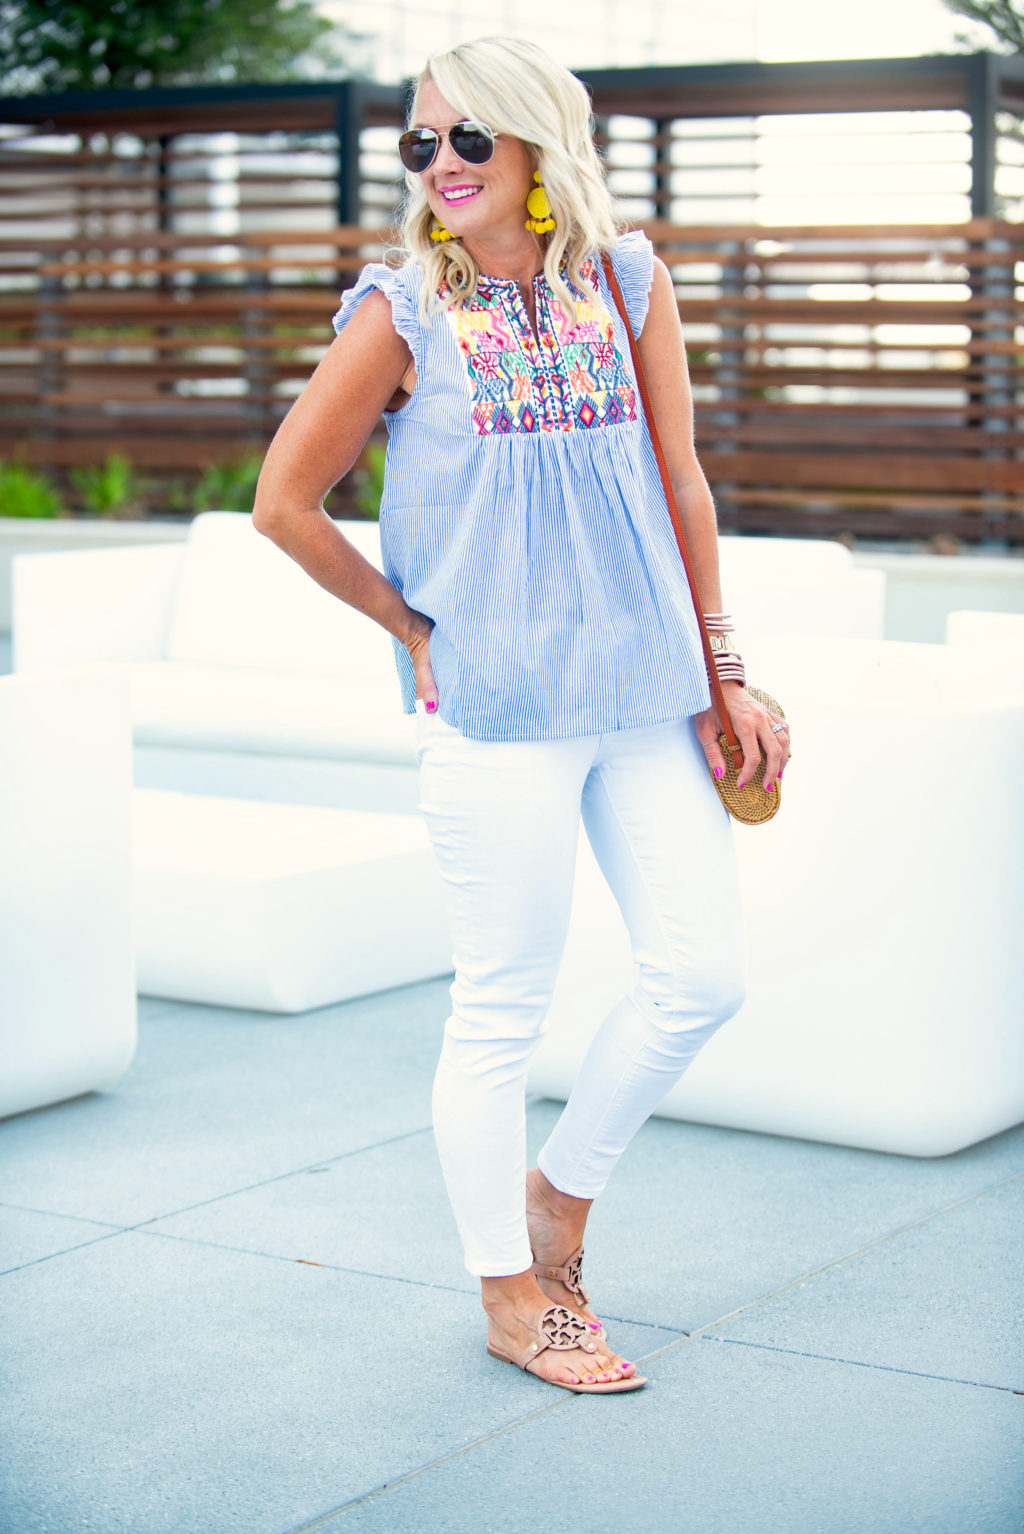 amazon prime day fashion deal outfit embroidered top white jeans tory burch flip flop sandals